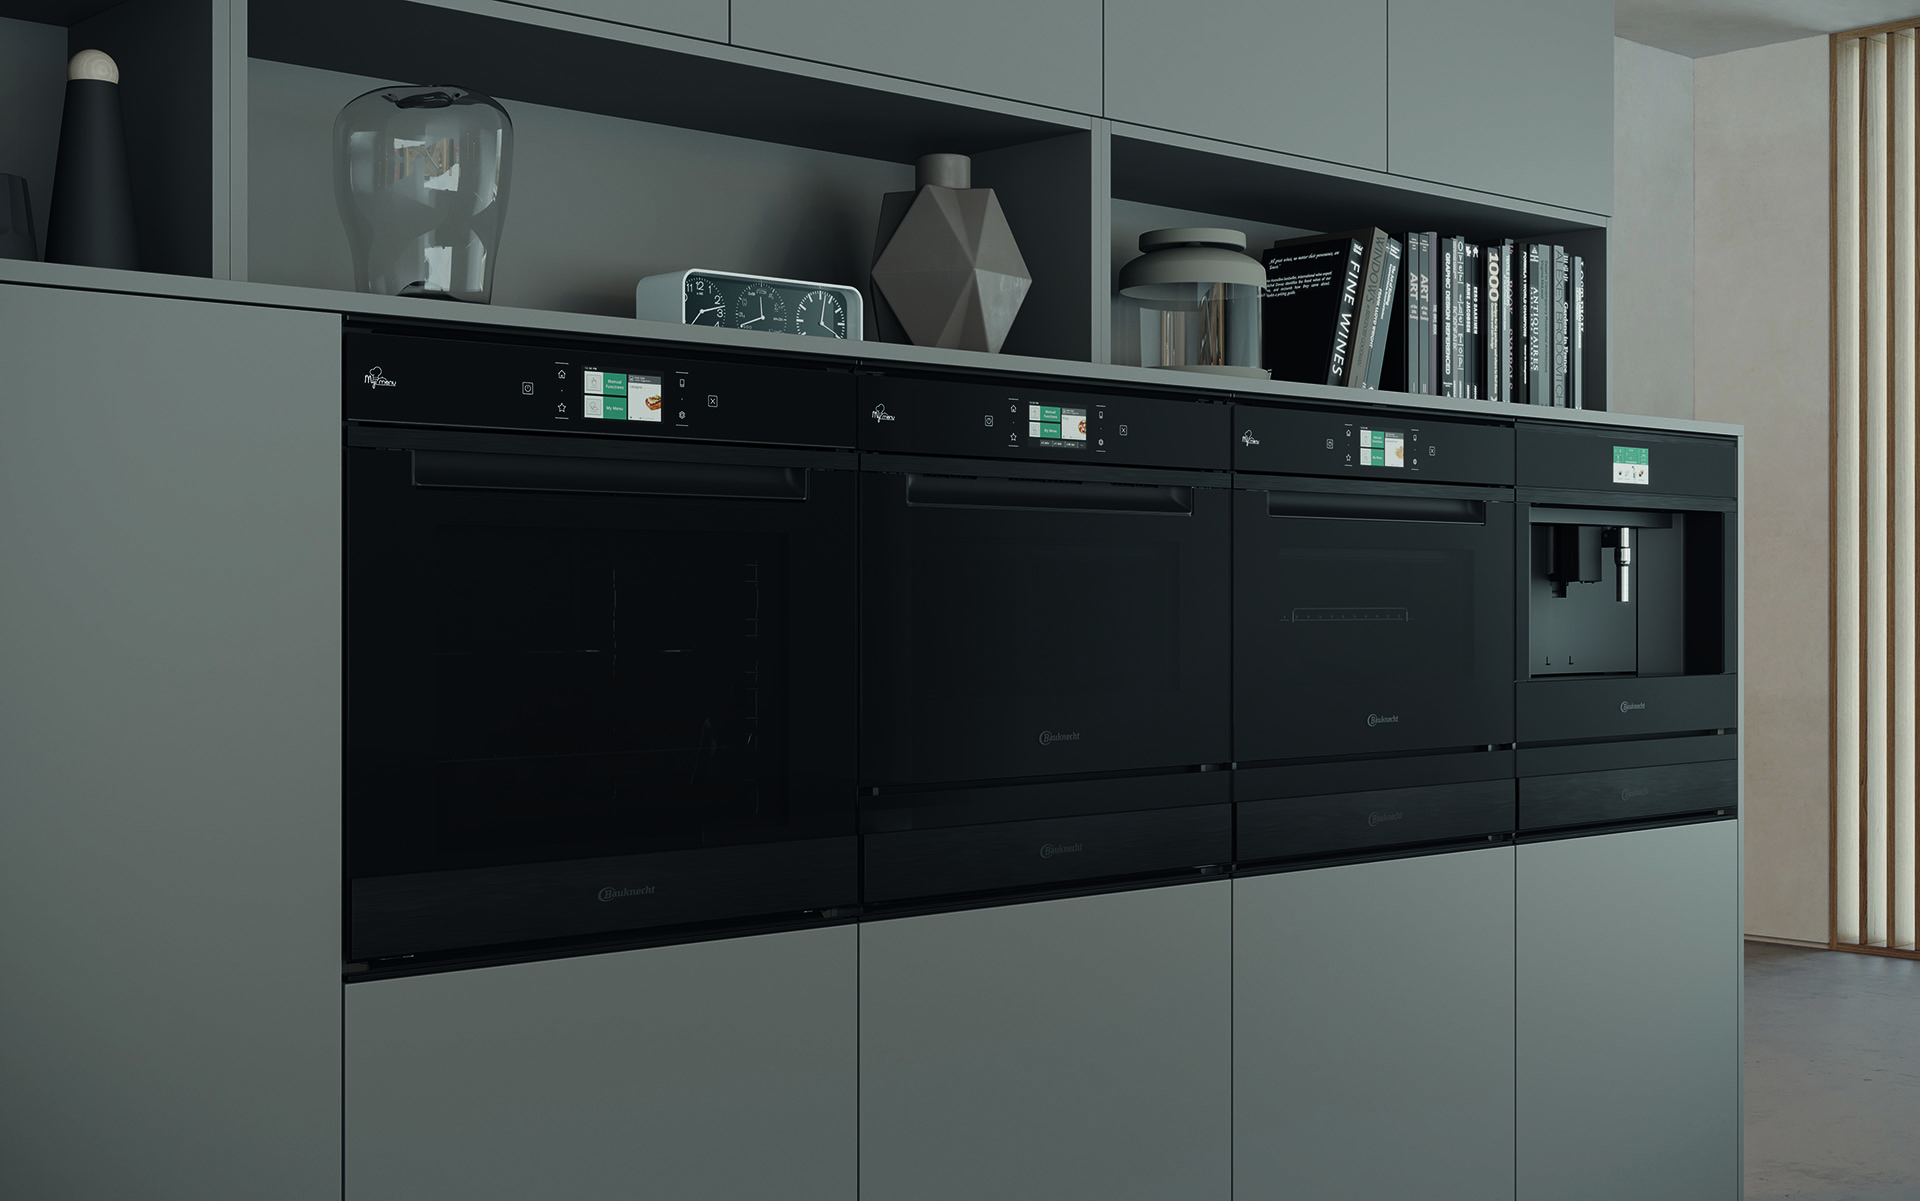 Bauknecht Built-in Collection